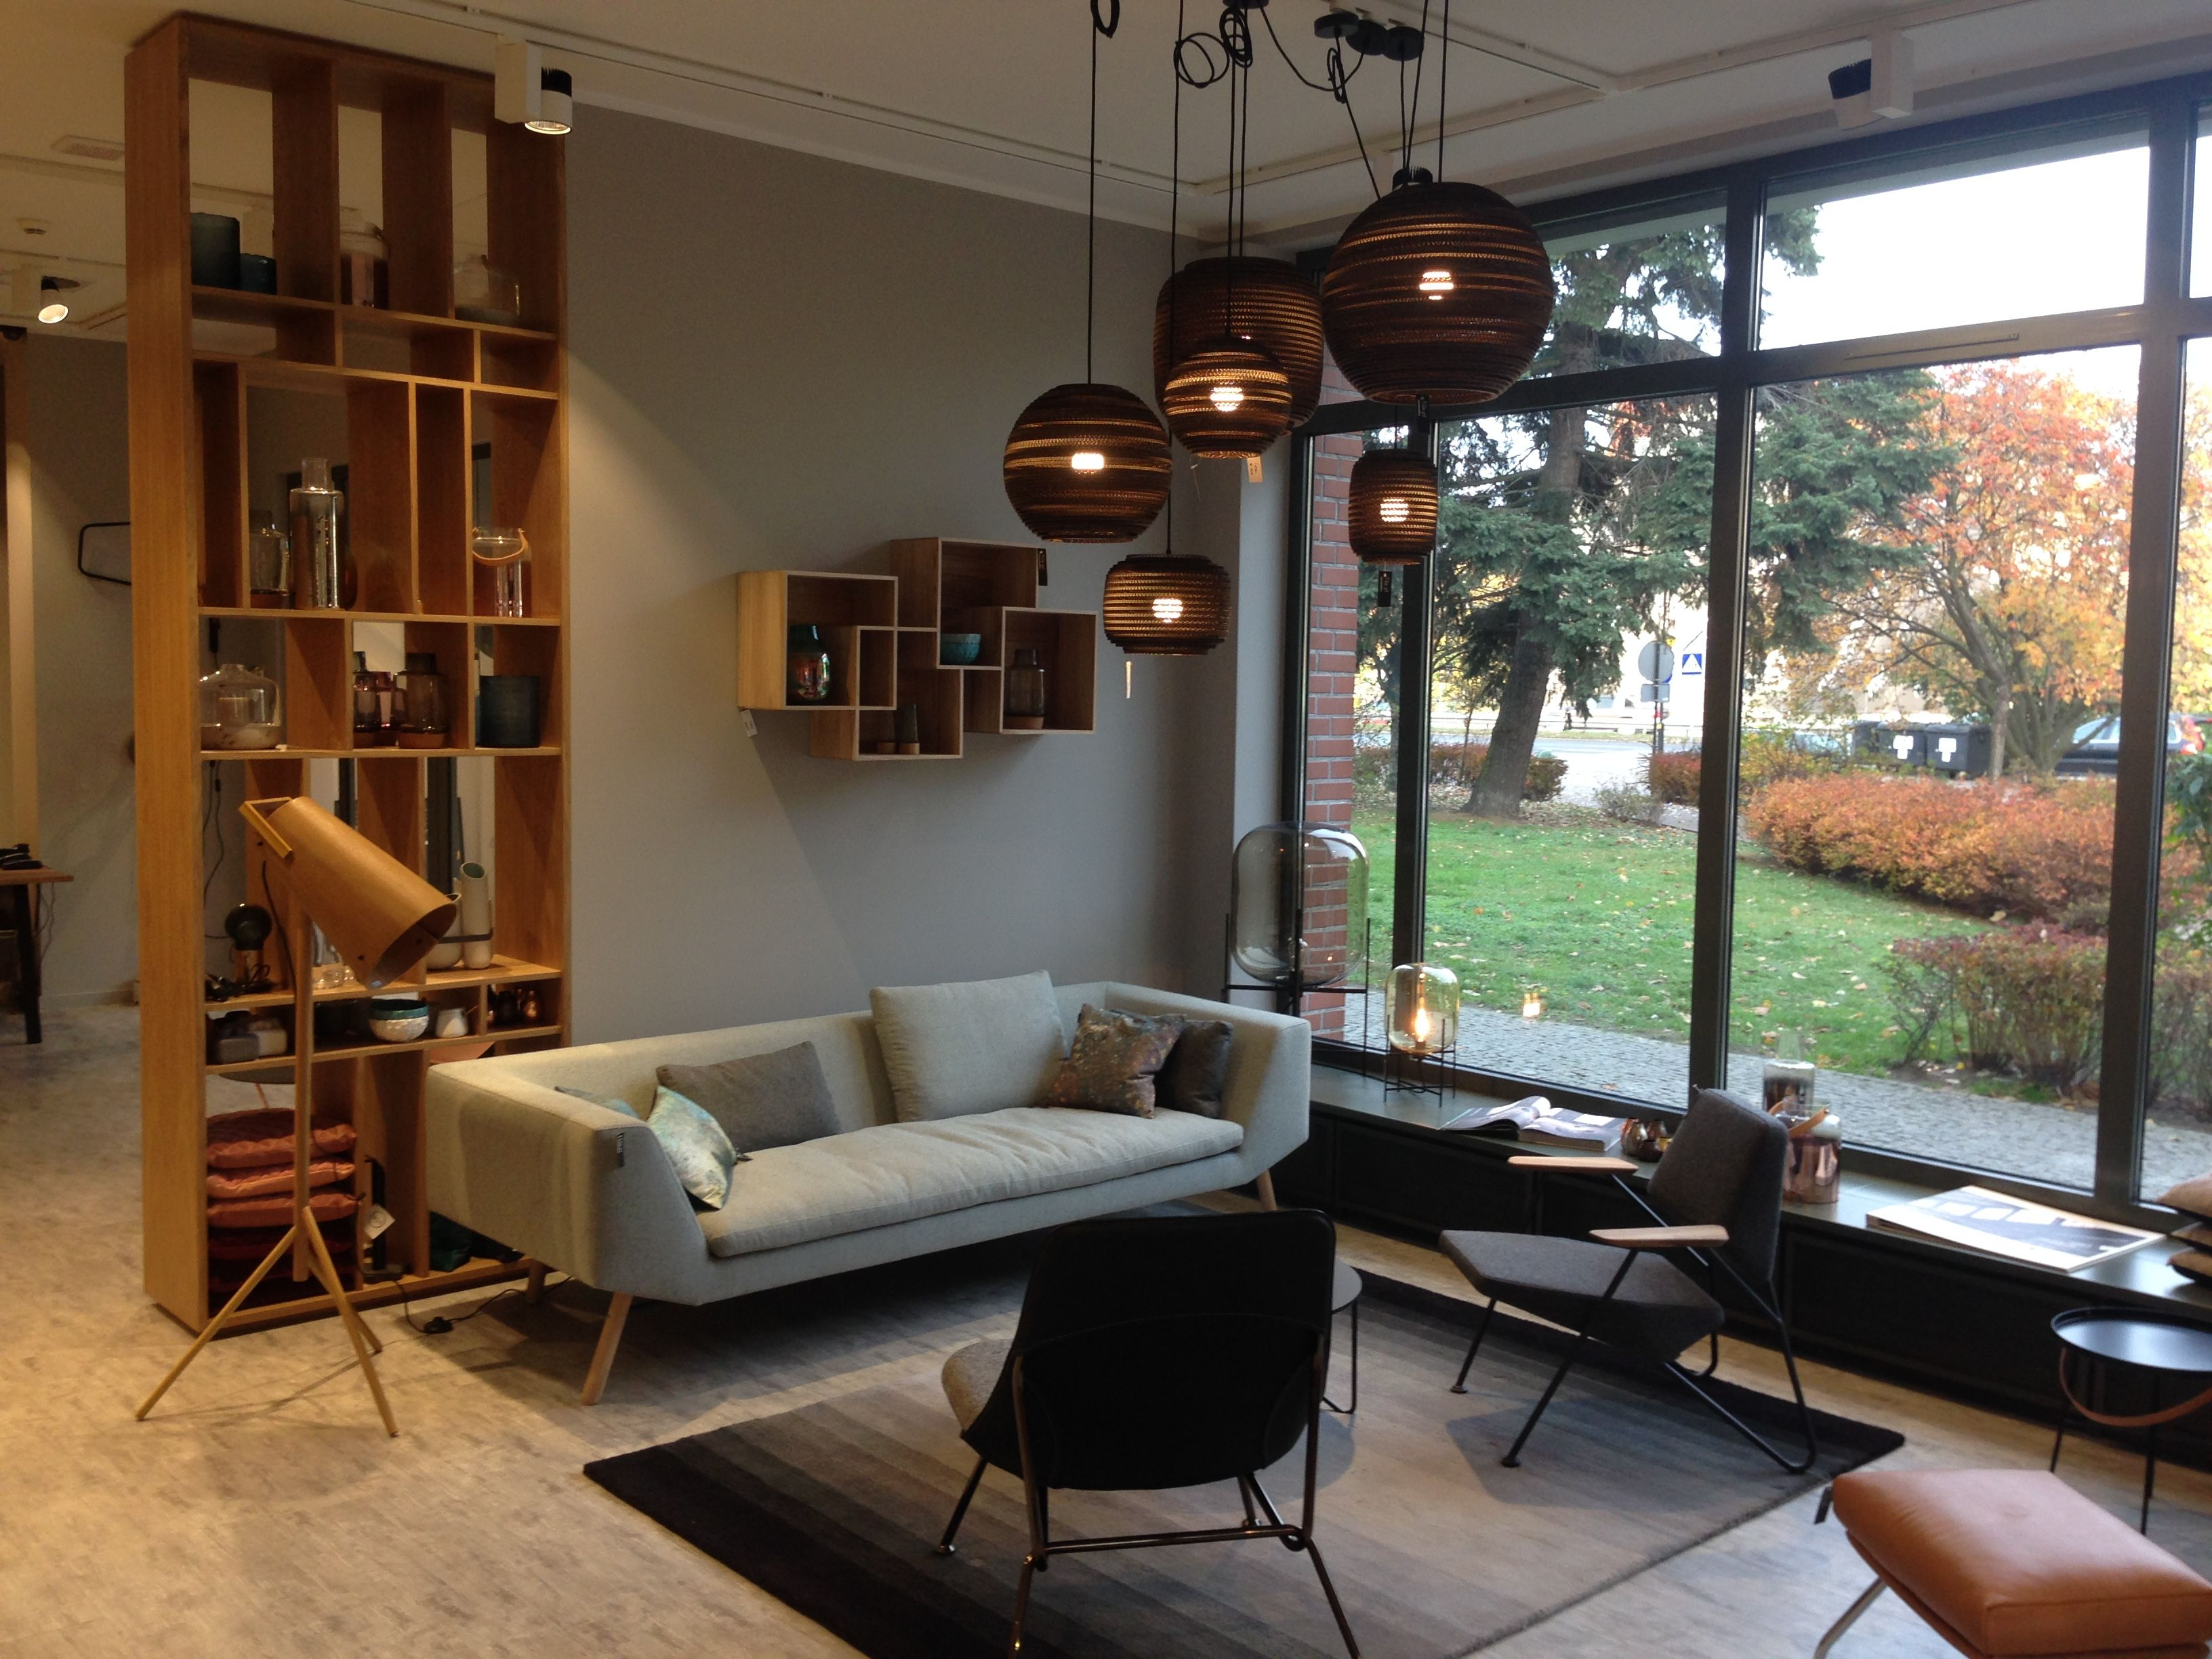 Tila.pl Showroom Lifestyle Design